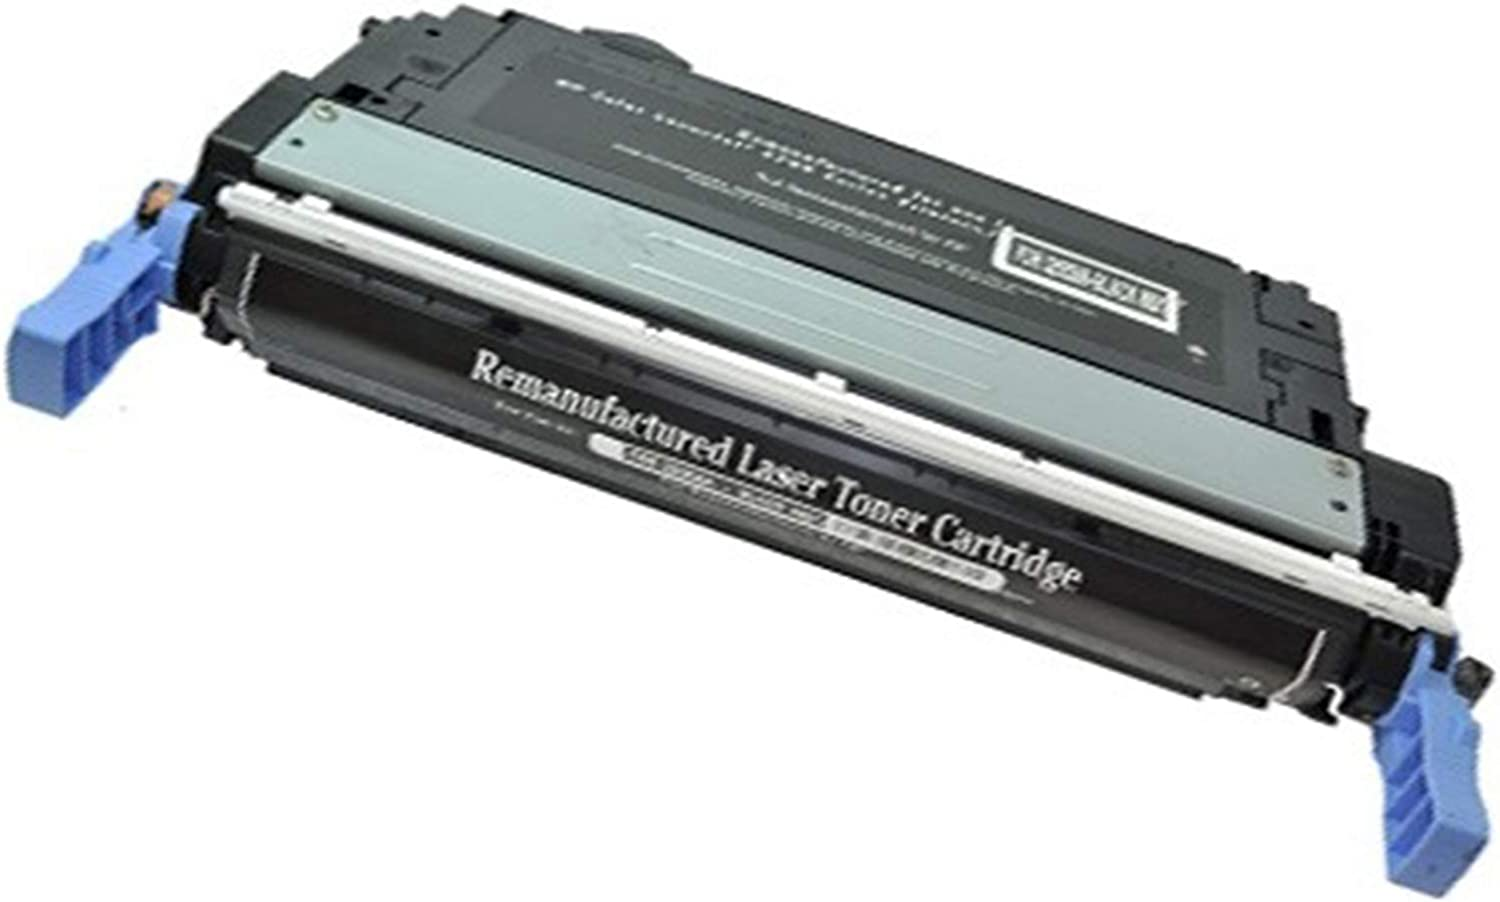 Speedy Toner HP 643A Remanufactured Black HP Q5950A Laser Toner Cartridges Replacement Use for HP Color Laserjet 4700